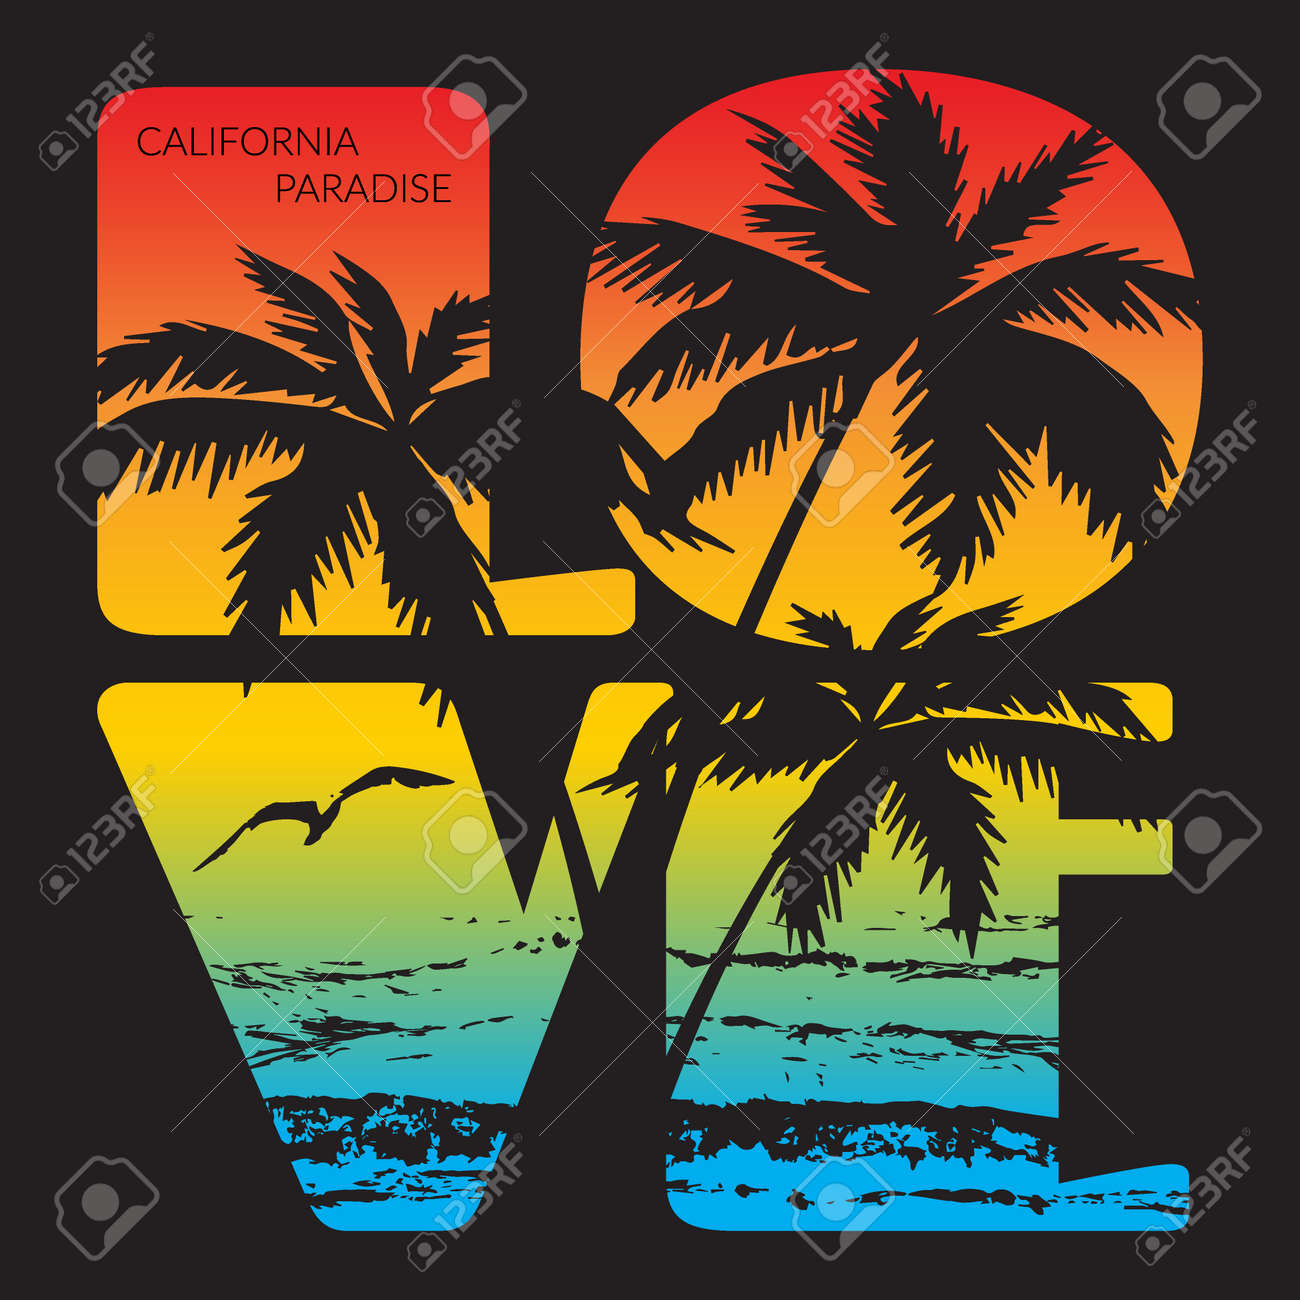 2141366ec820e8 California paradise Typography Graphics. T-shirt Printing Design for sports  apparel. CA ocean